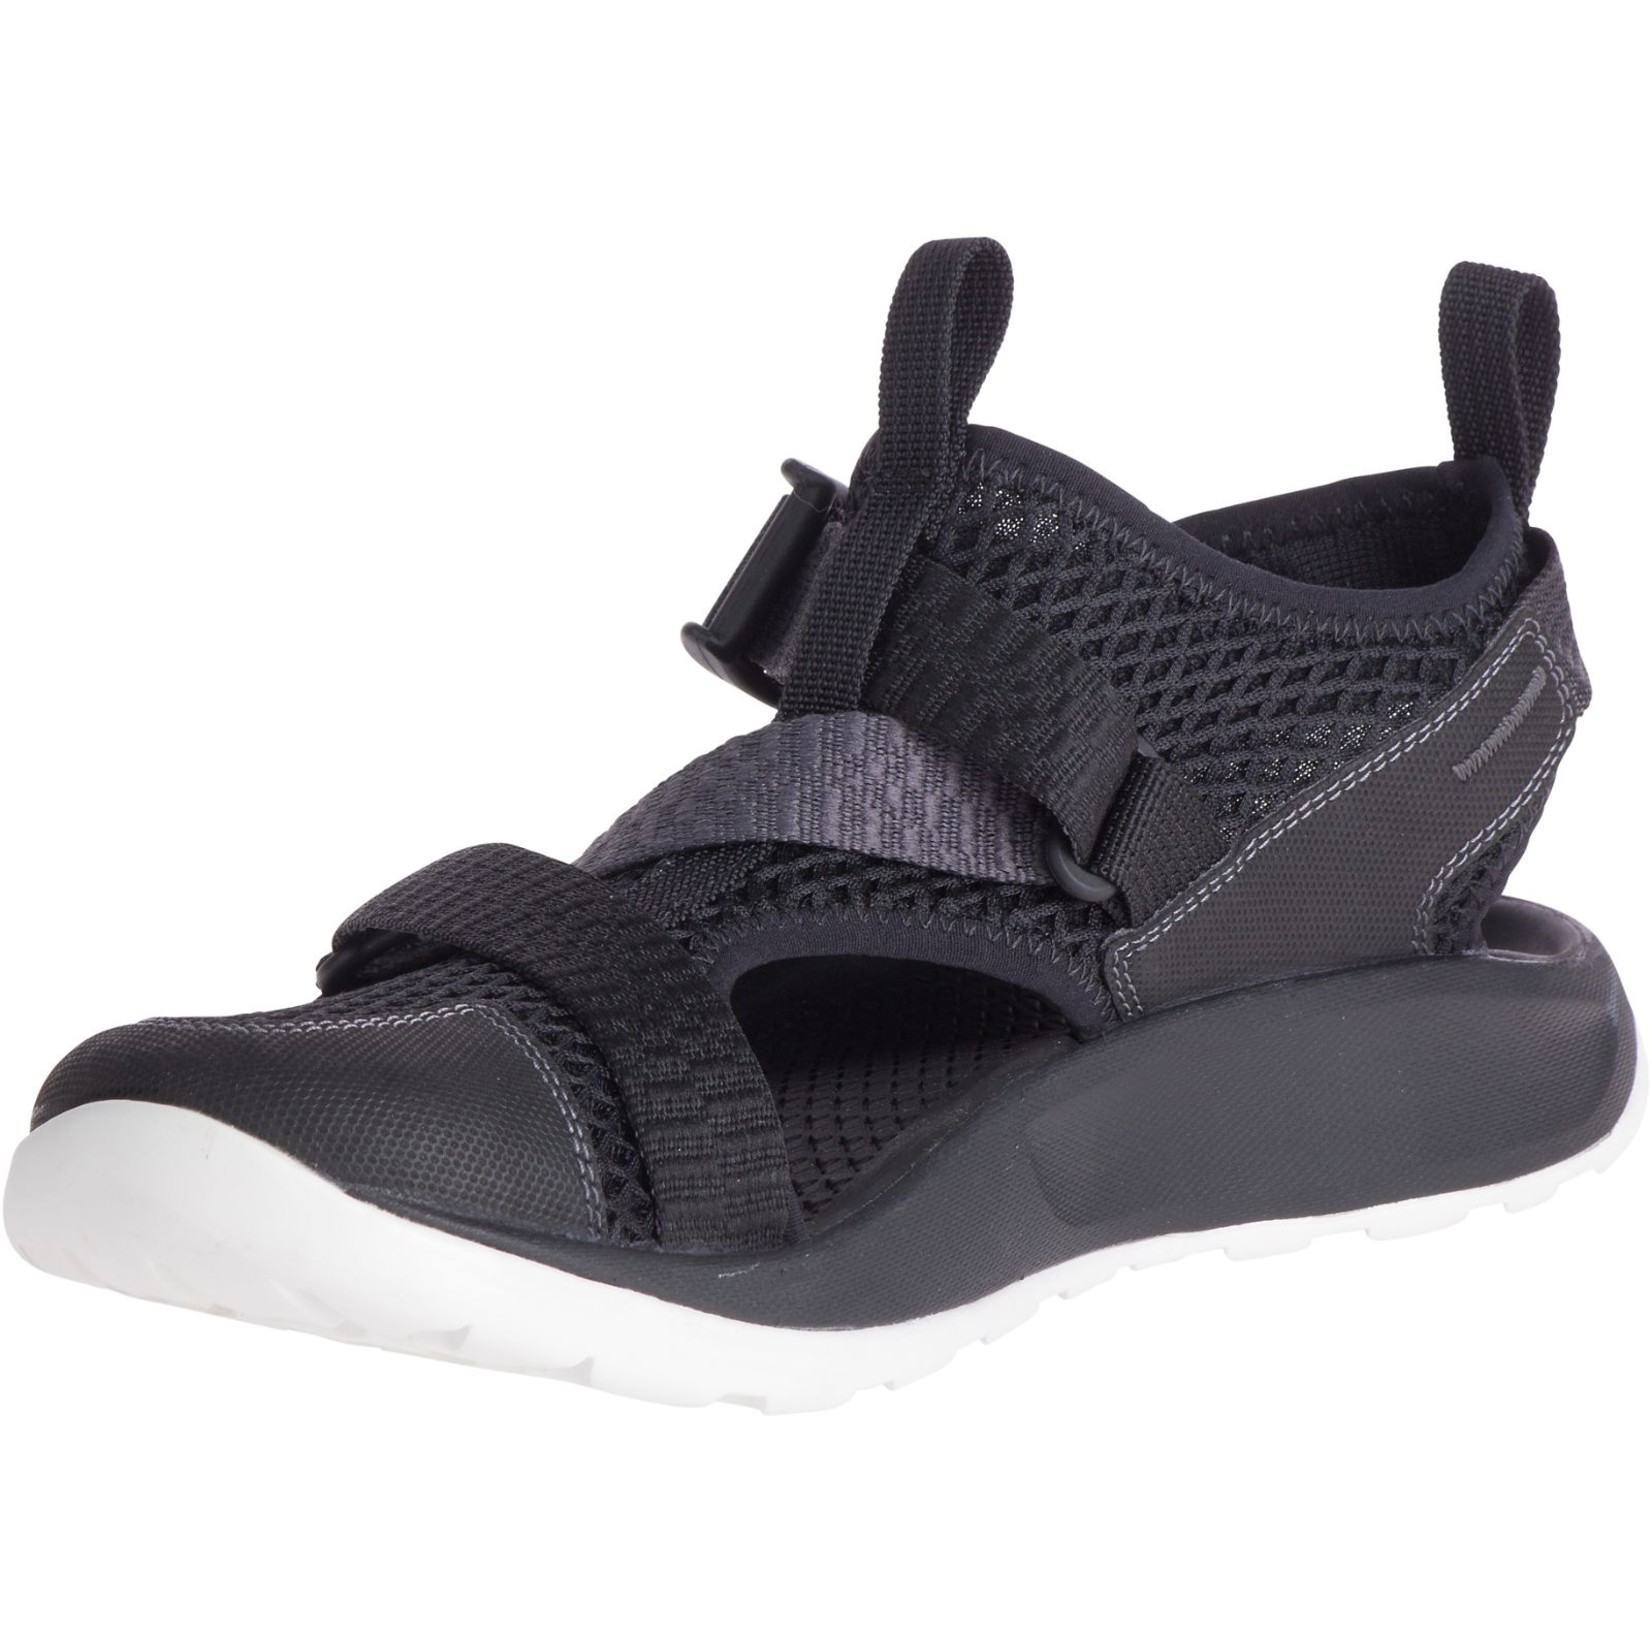 Chaco Chaco Women's Odyssey